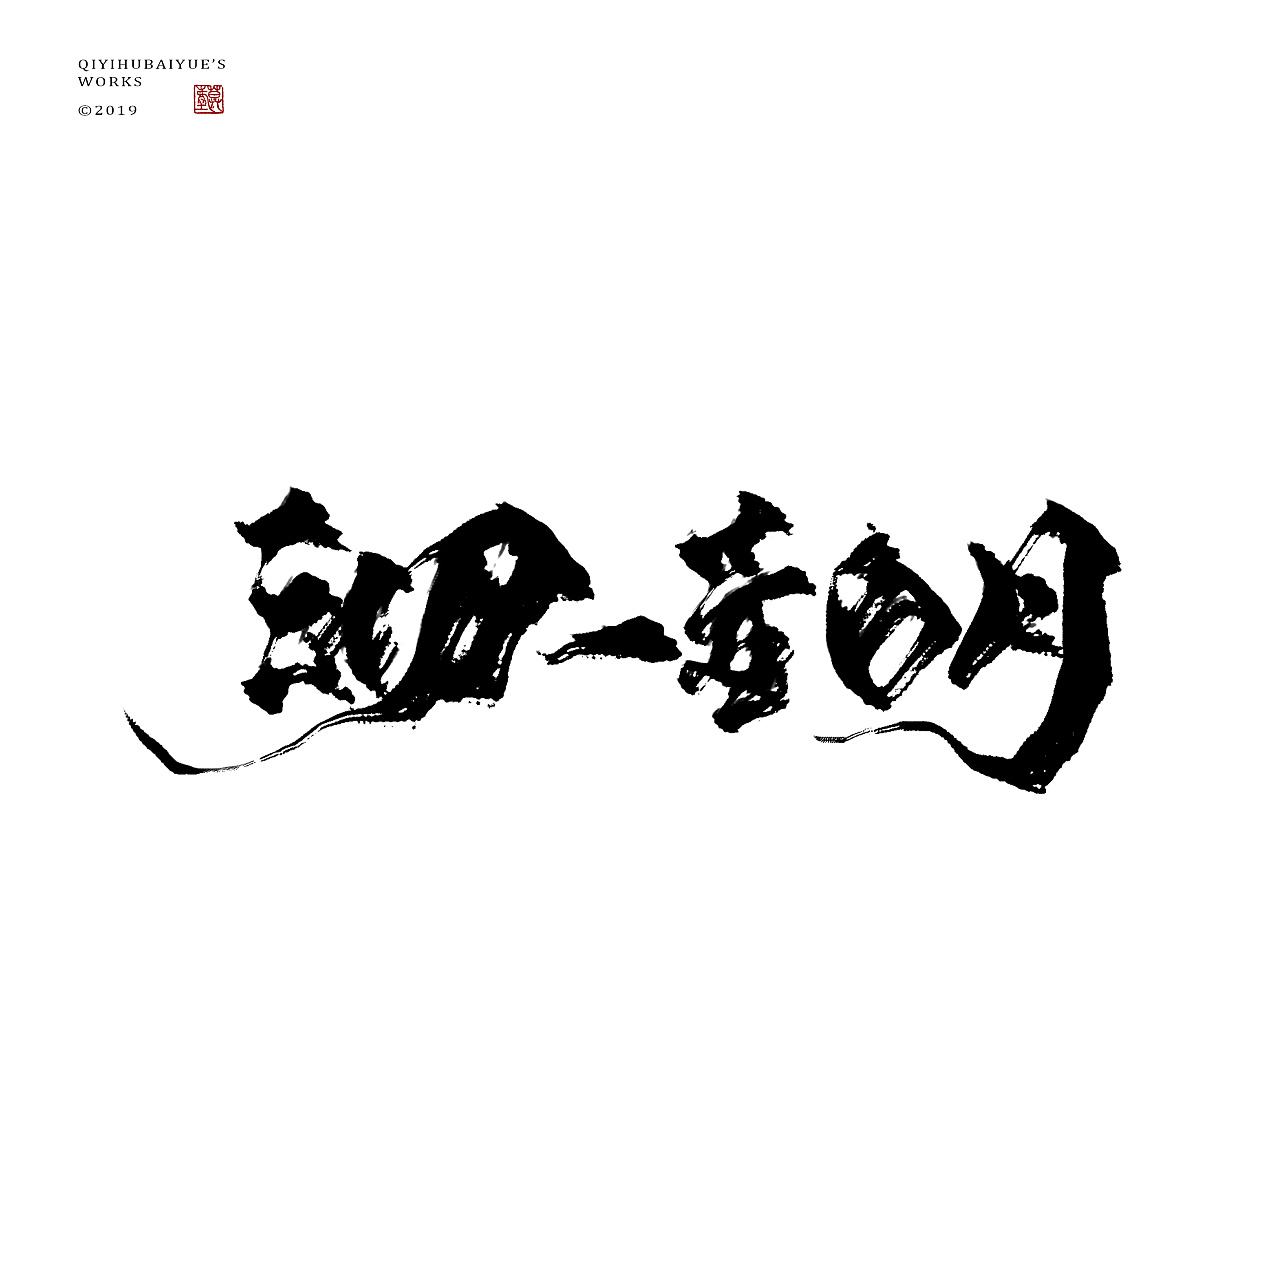 6P Chinese traditional calligraphy brush calligraphy font style appreciation #.1464